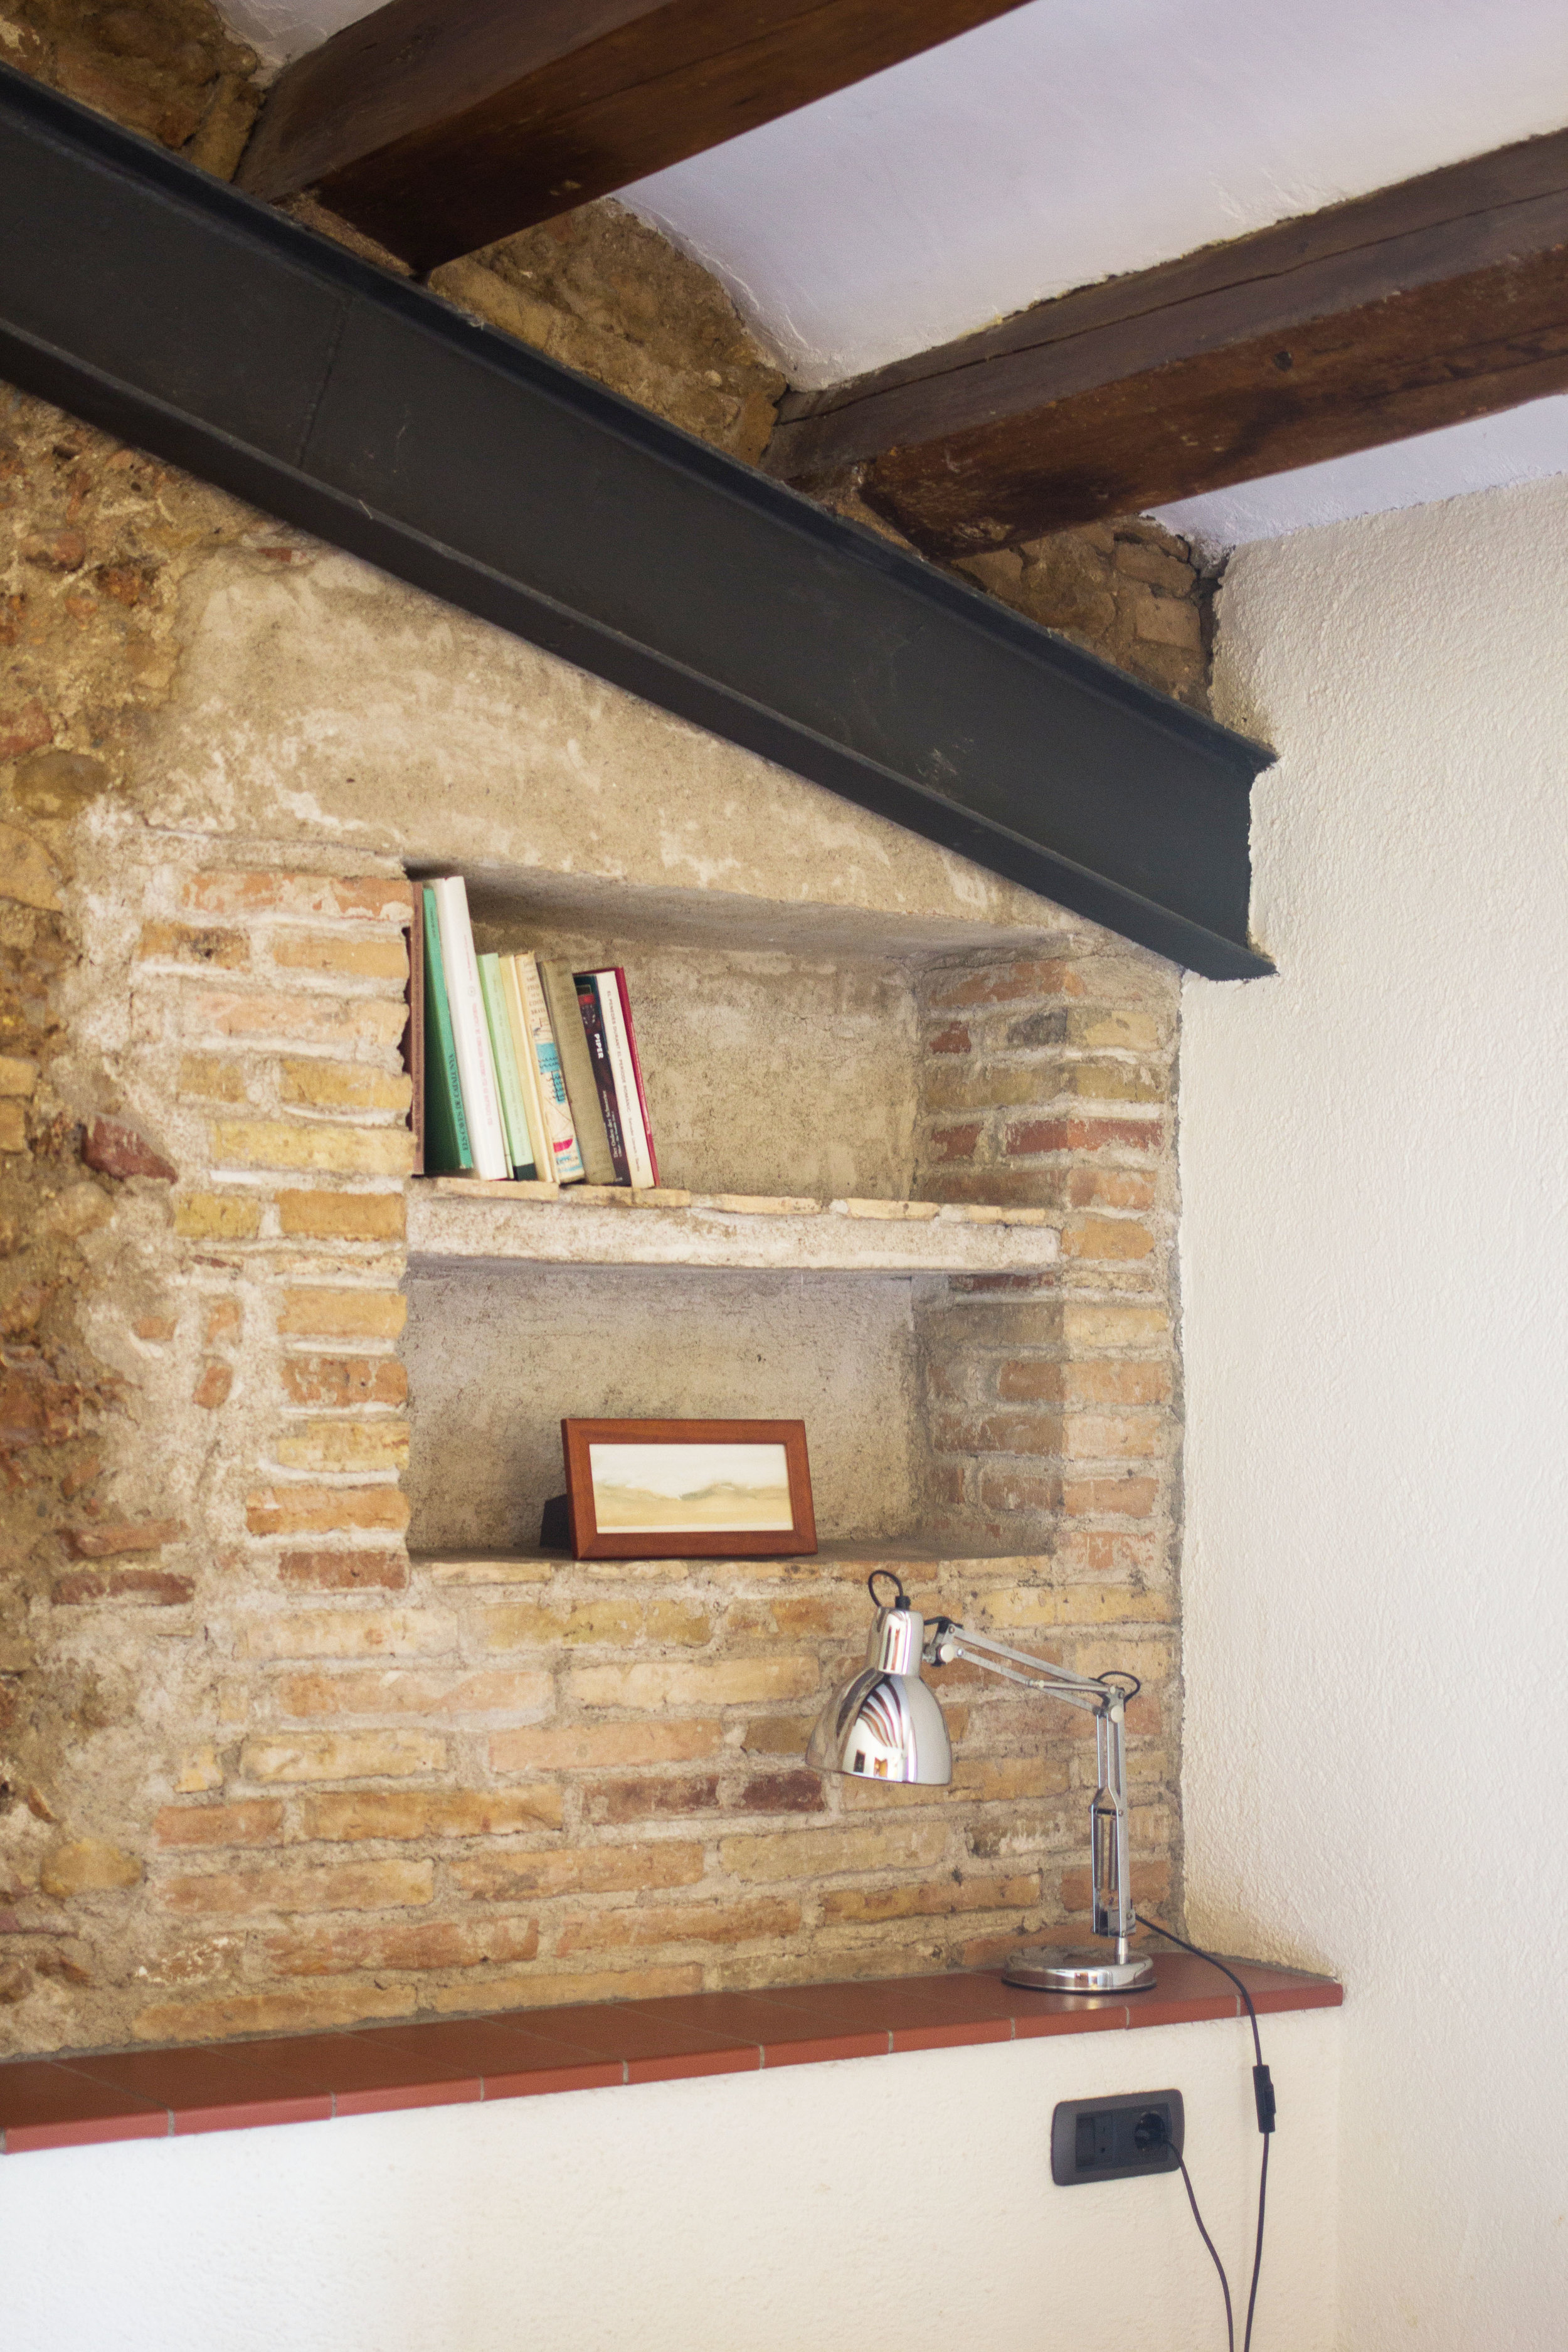 close up of the built in shelves with books and artwork